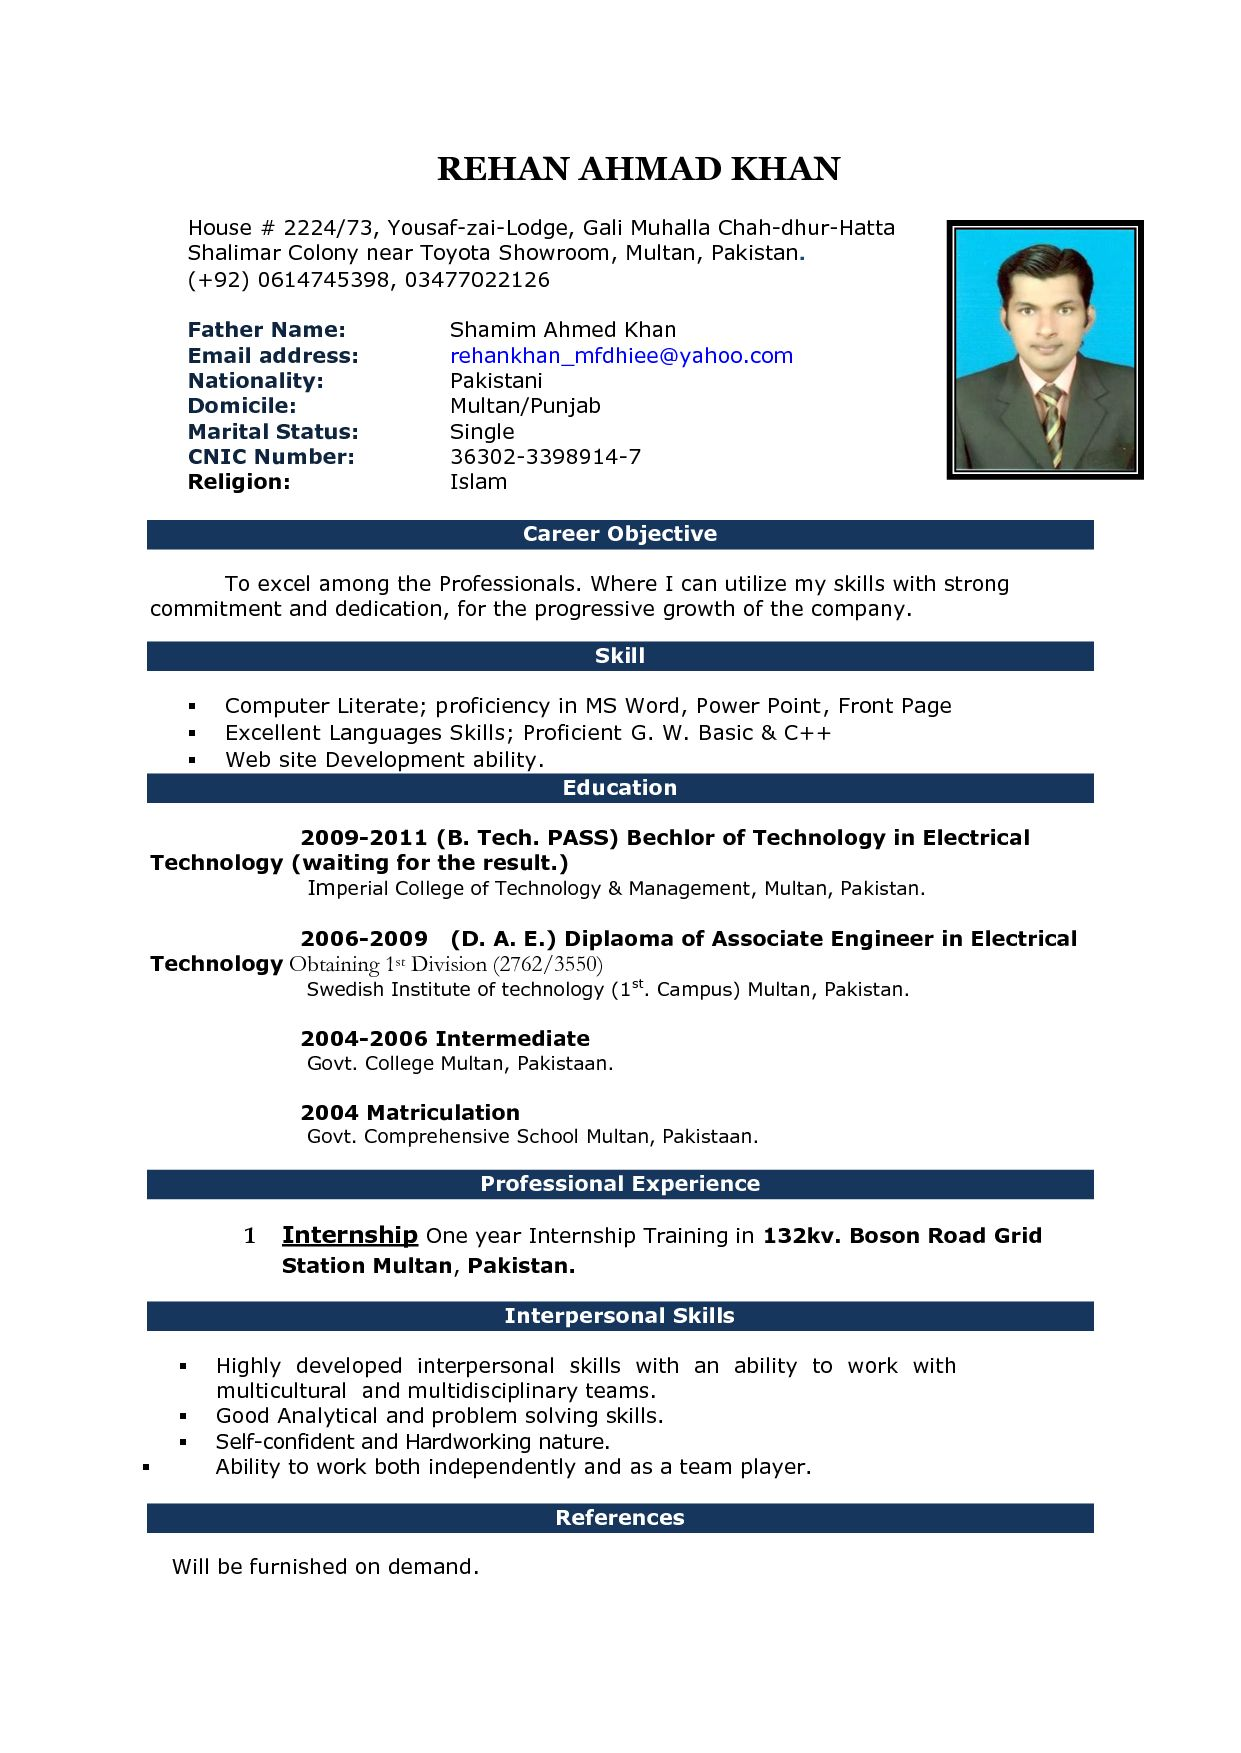 msword resume templates